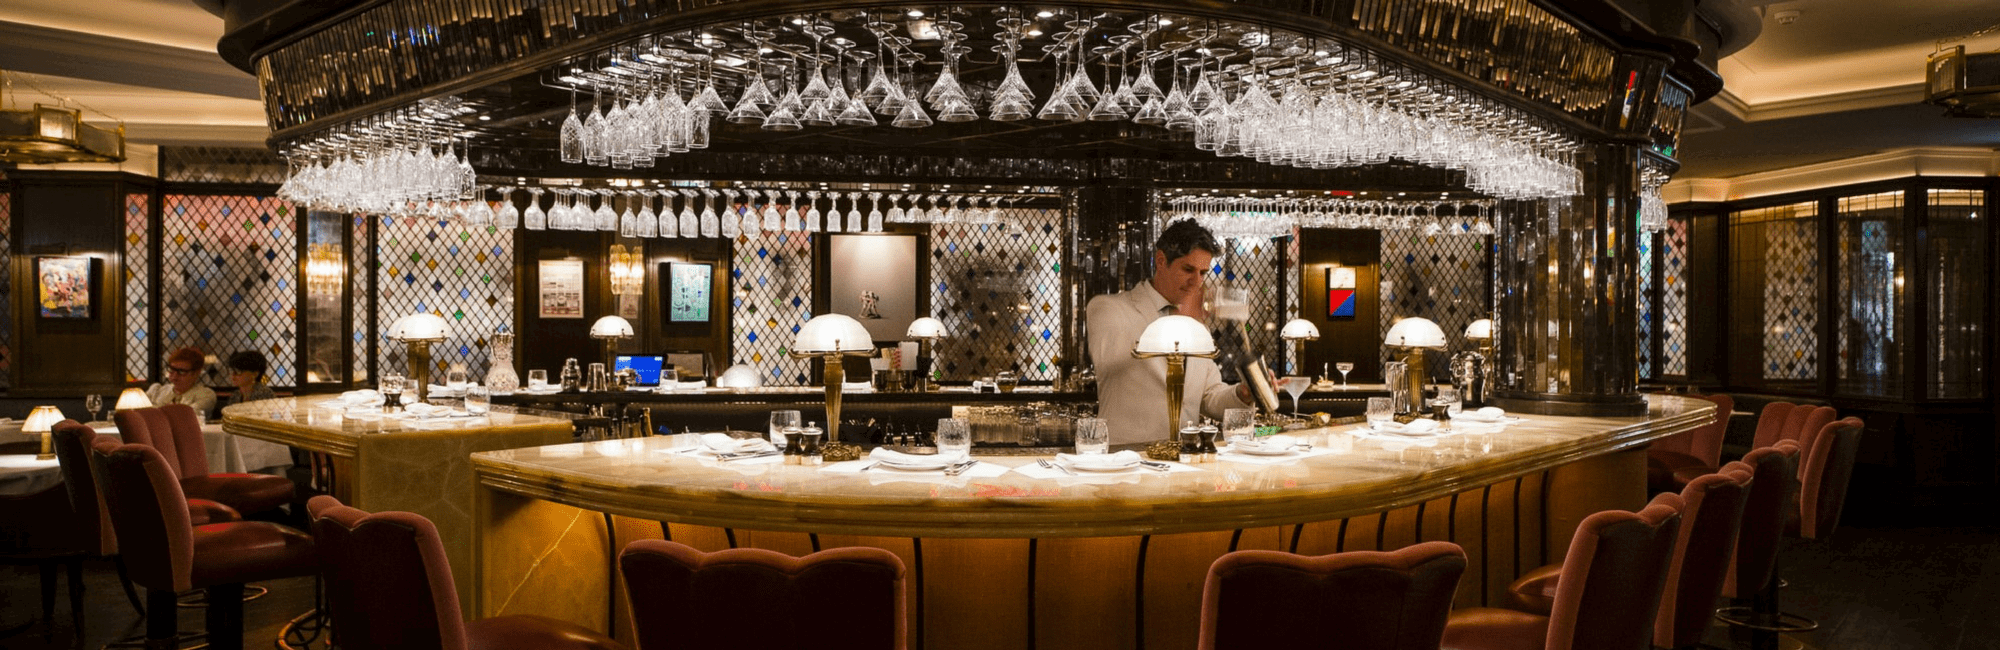 The Central Dining Bar at The Ivy